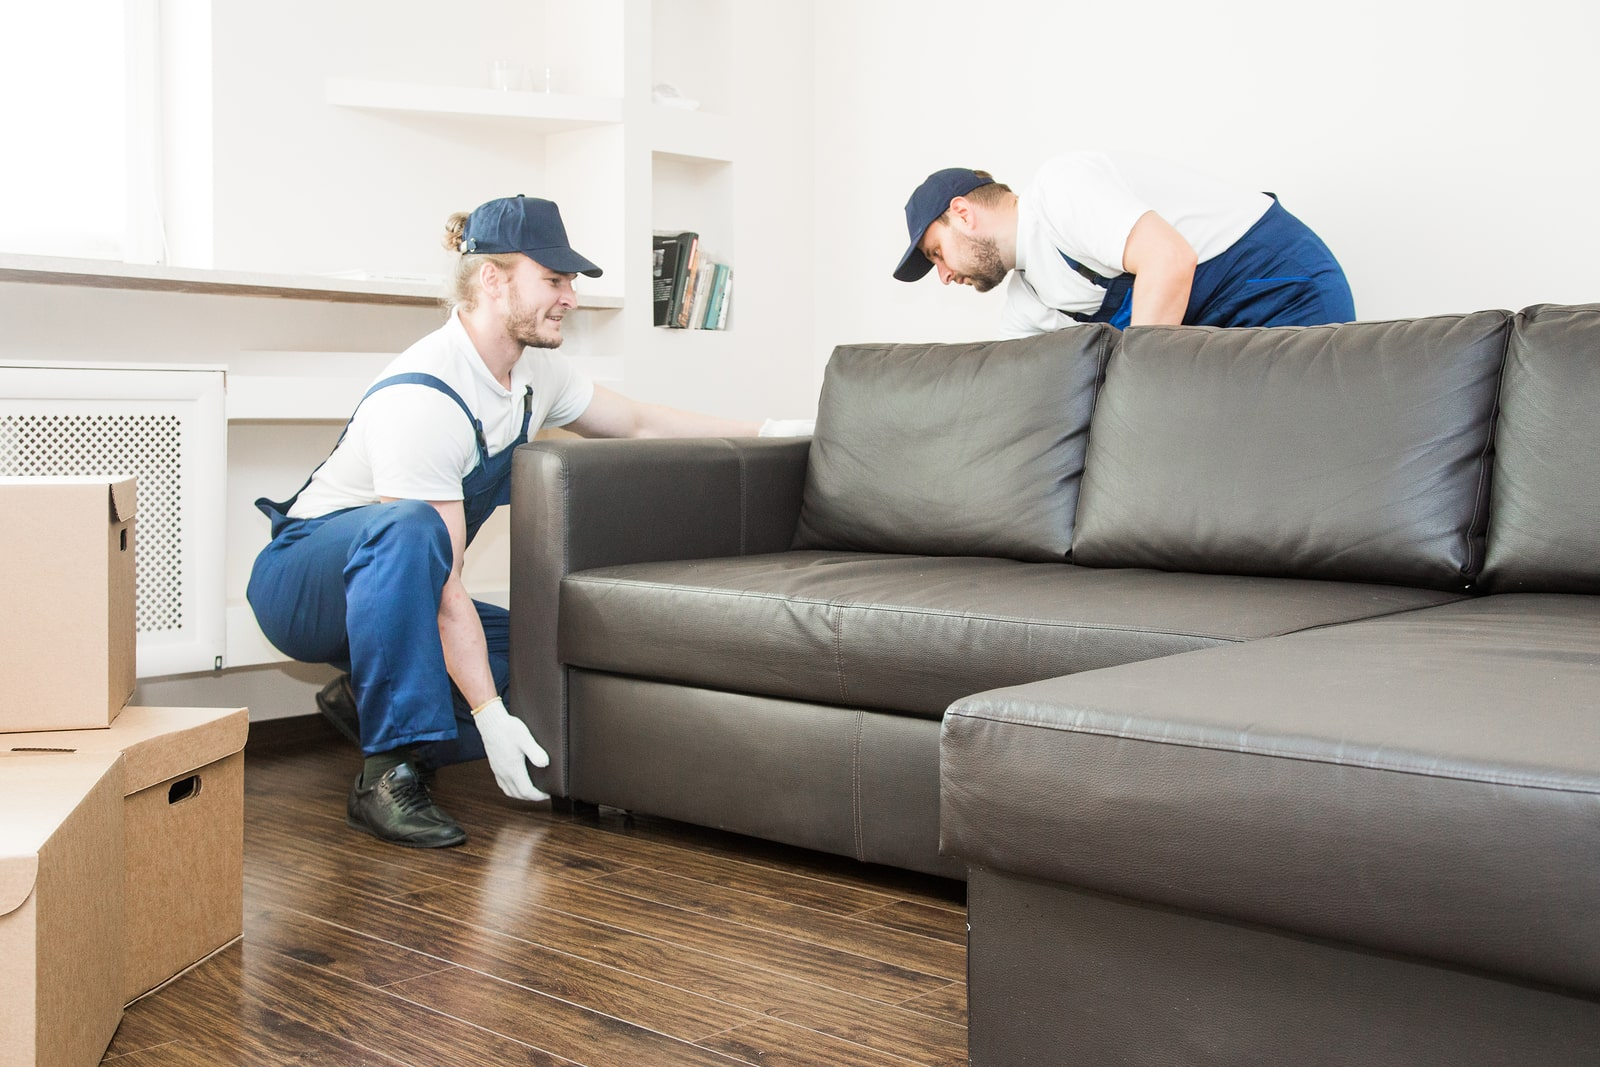 Hiring Movers and Packers